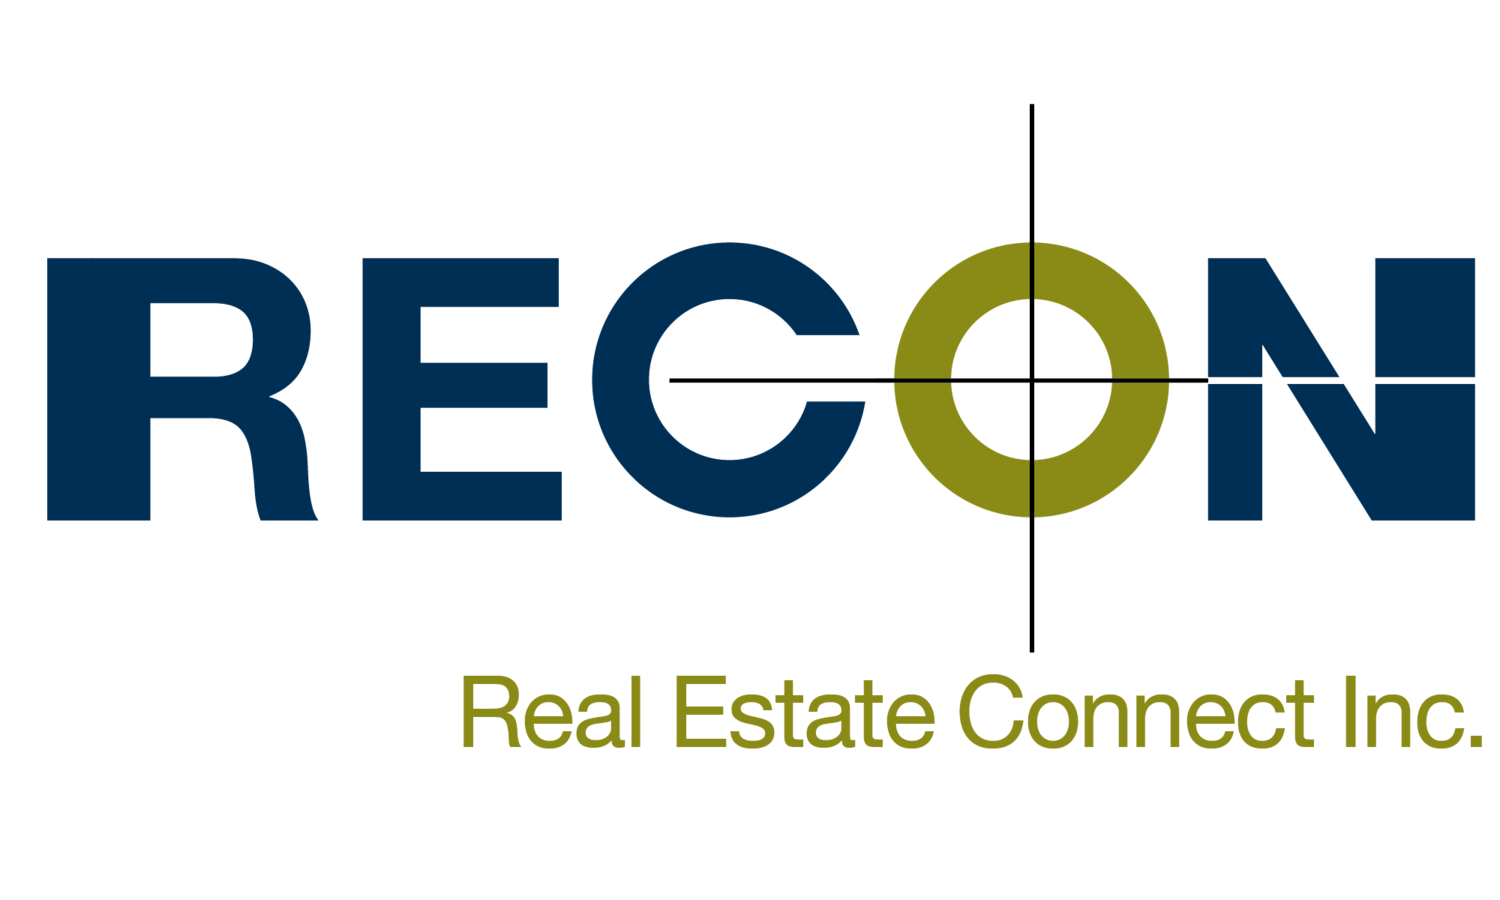 Real Estate Connect Inc.